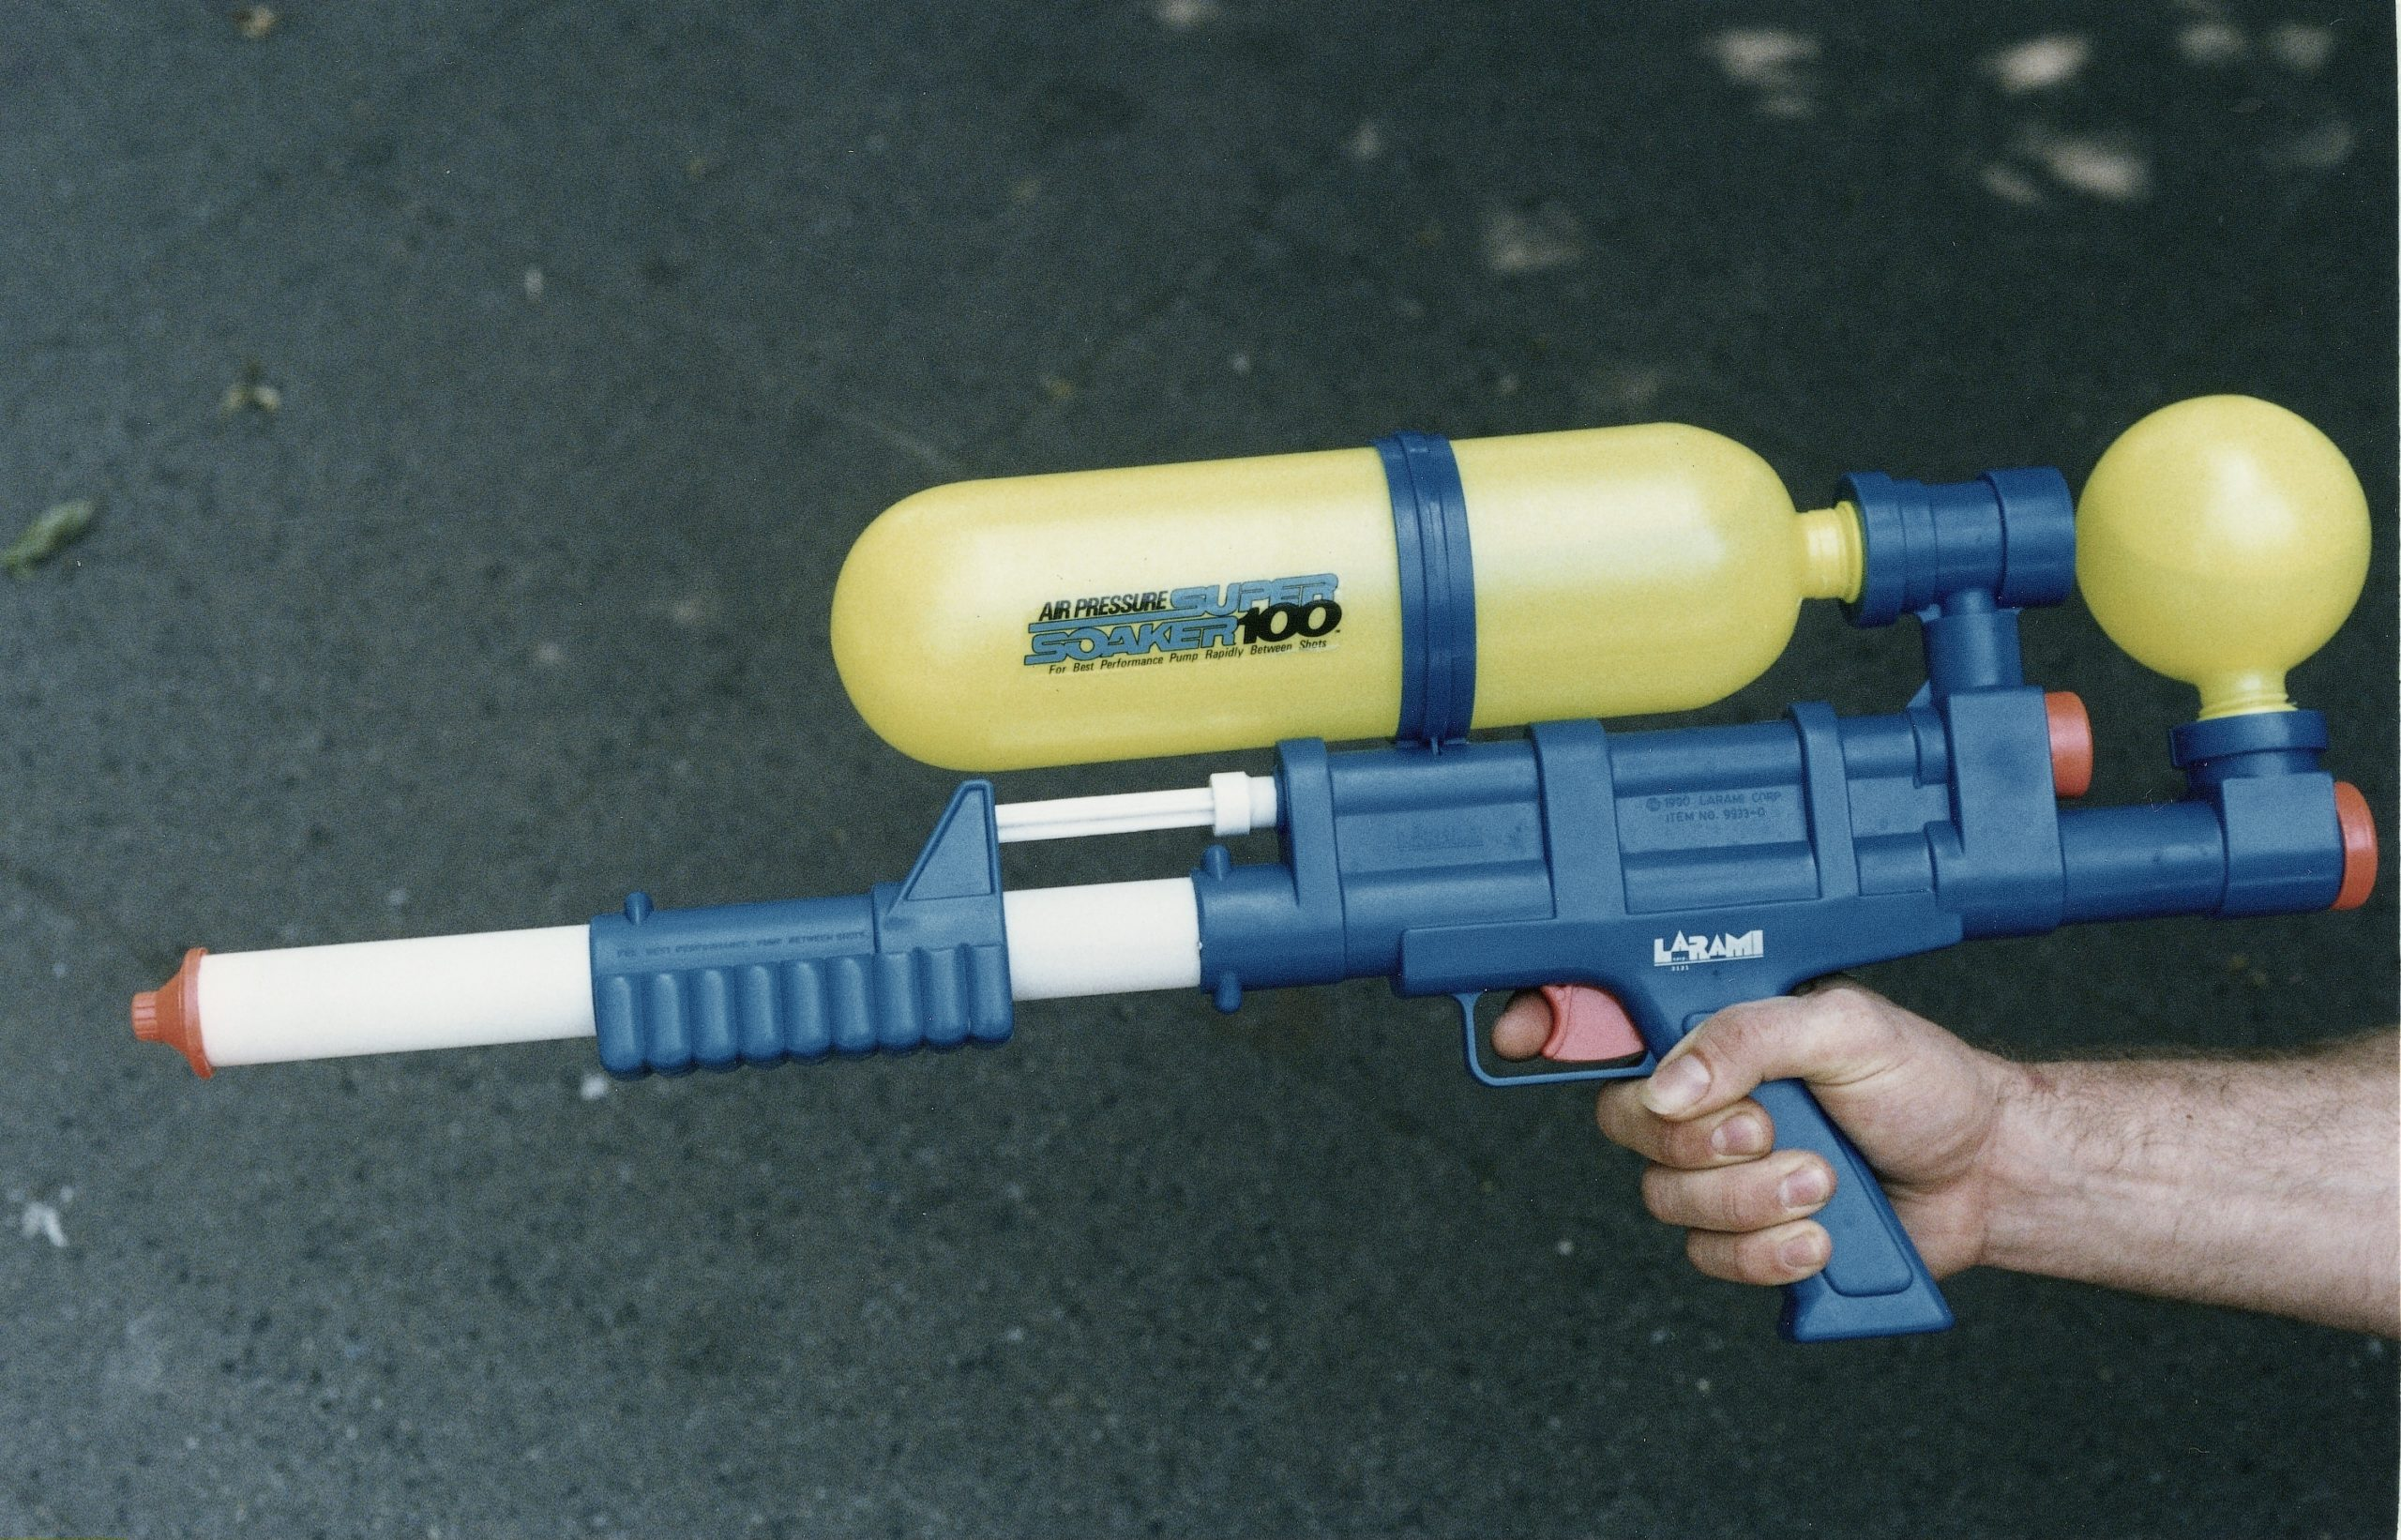 Most Popular Toys of the 90s: Super Soakers